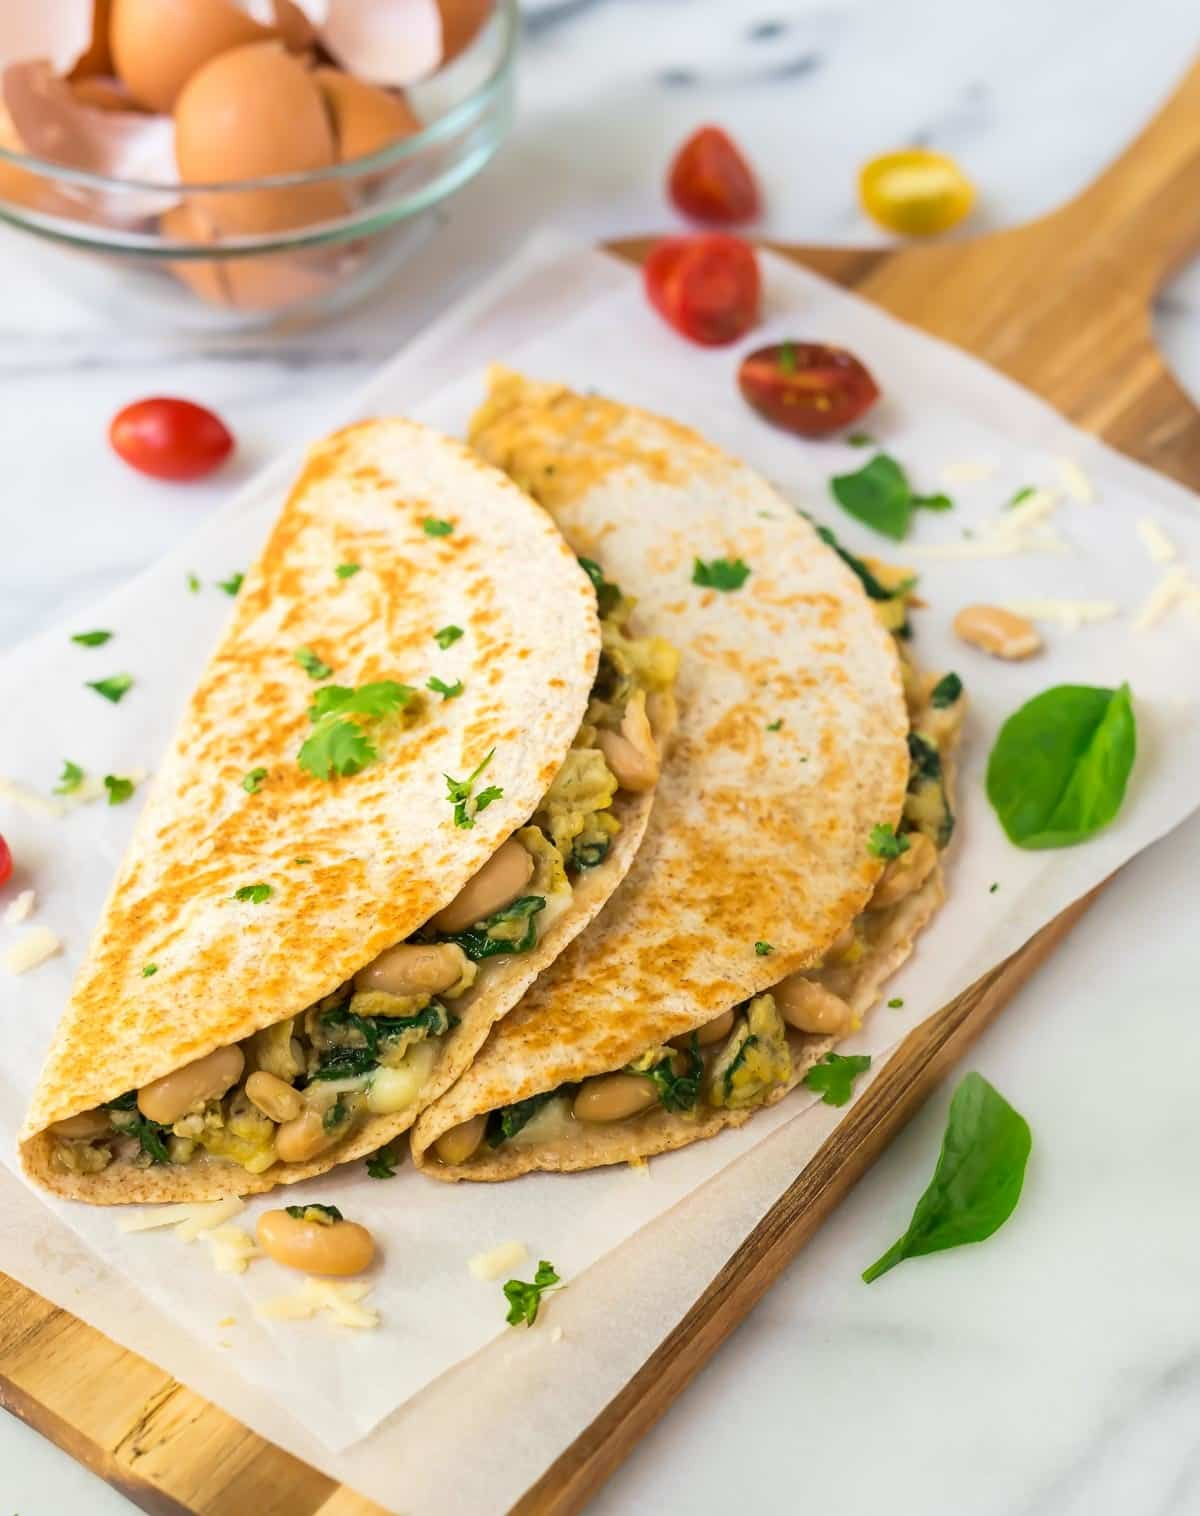 Make Ahead Freezer Breakfast Quesadilla with eggs, spinach, cheese, and white beans sitting on parchment paper and a cutting board